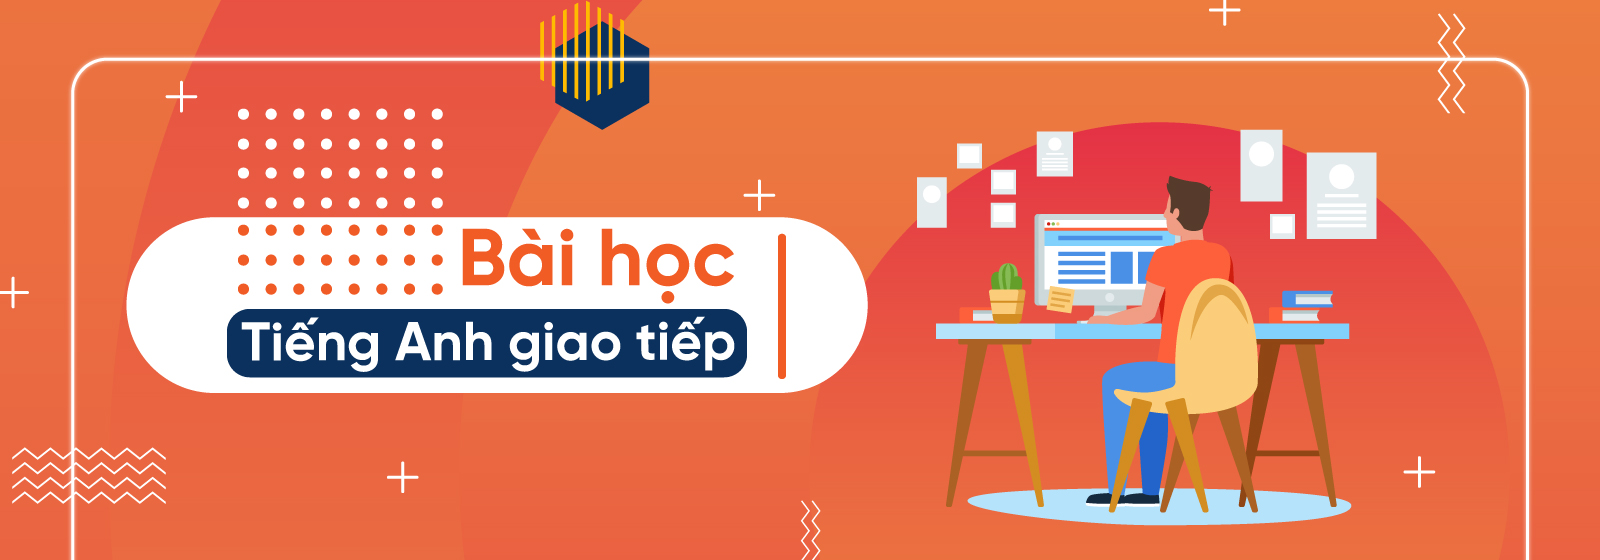 Banner Top - Cach hoc tieng anh